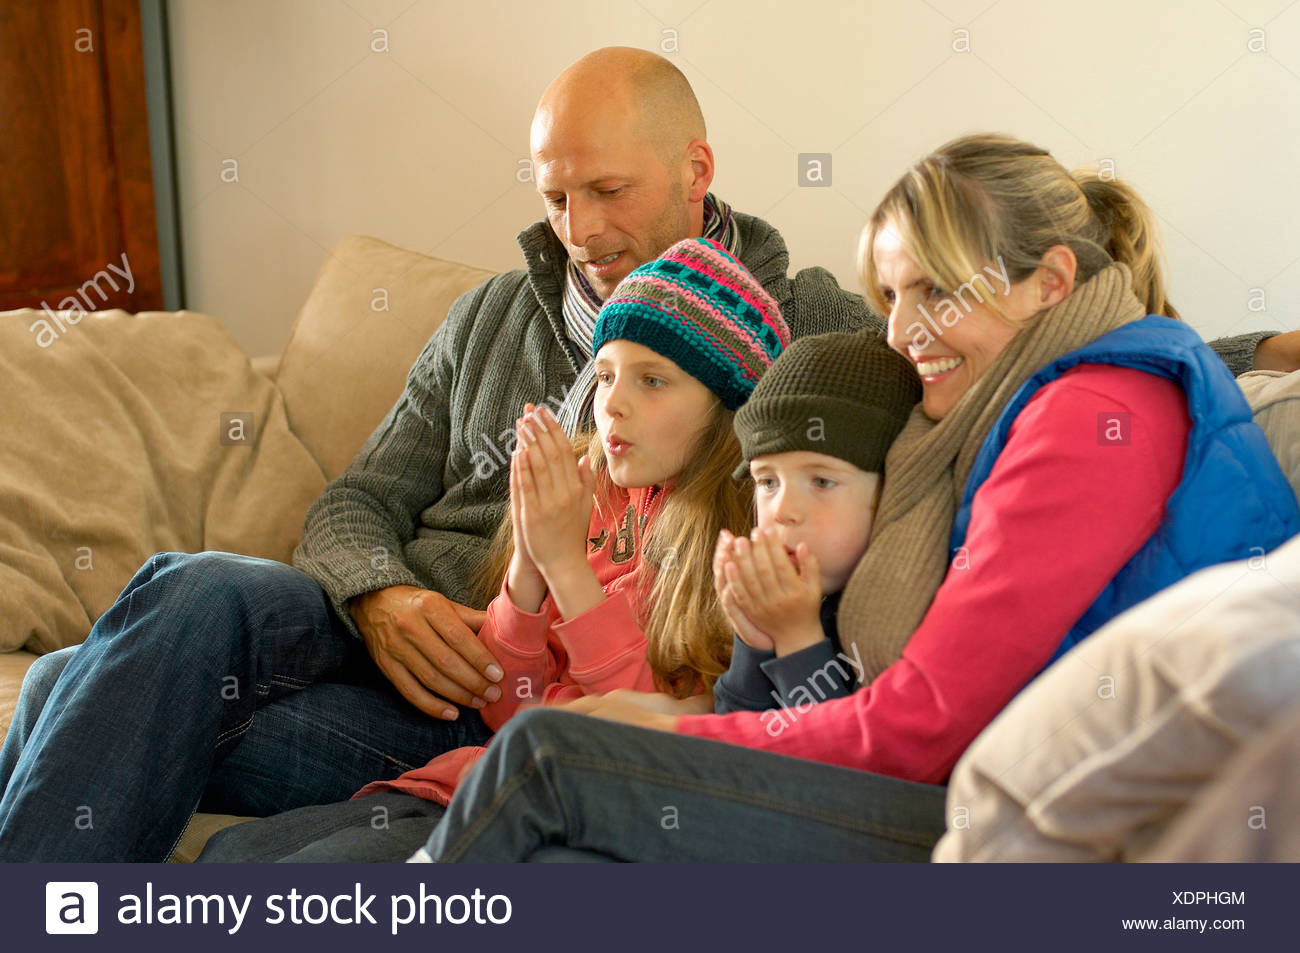 Family winter clothes keeping warm together on sofa - Stock Image